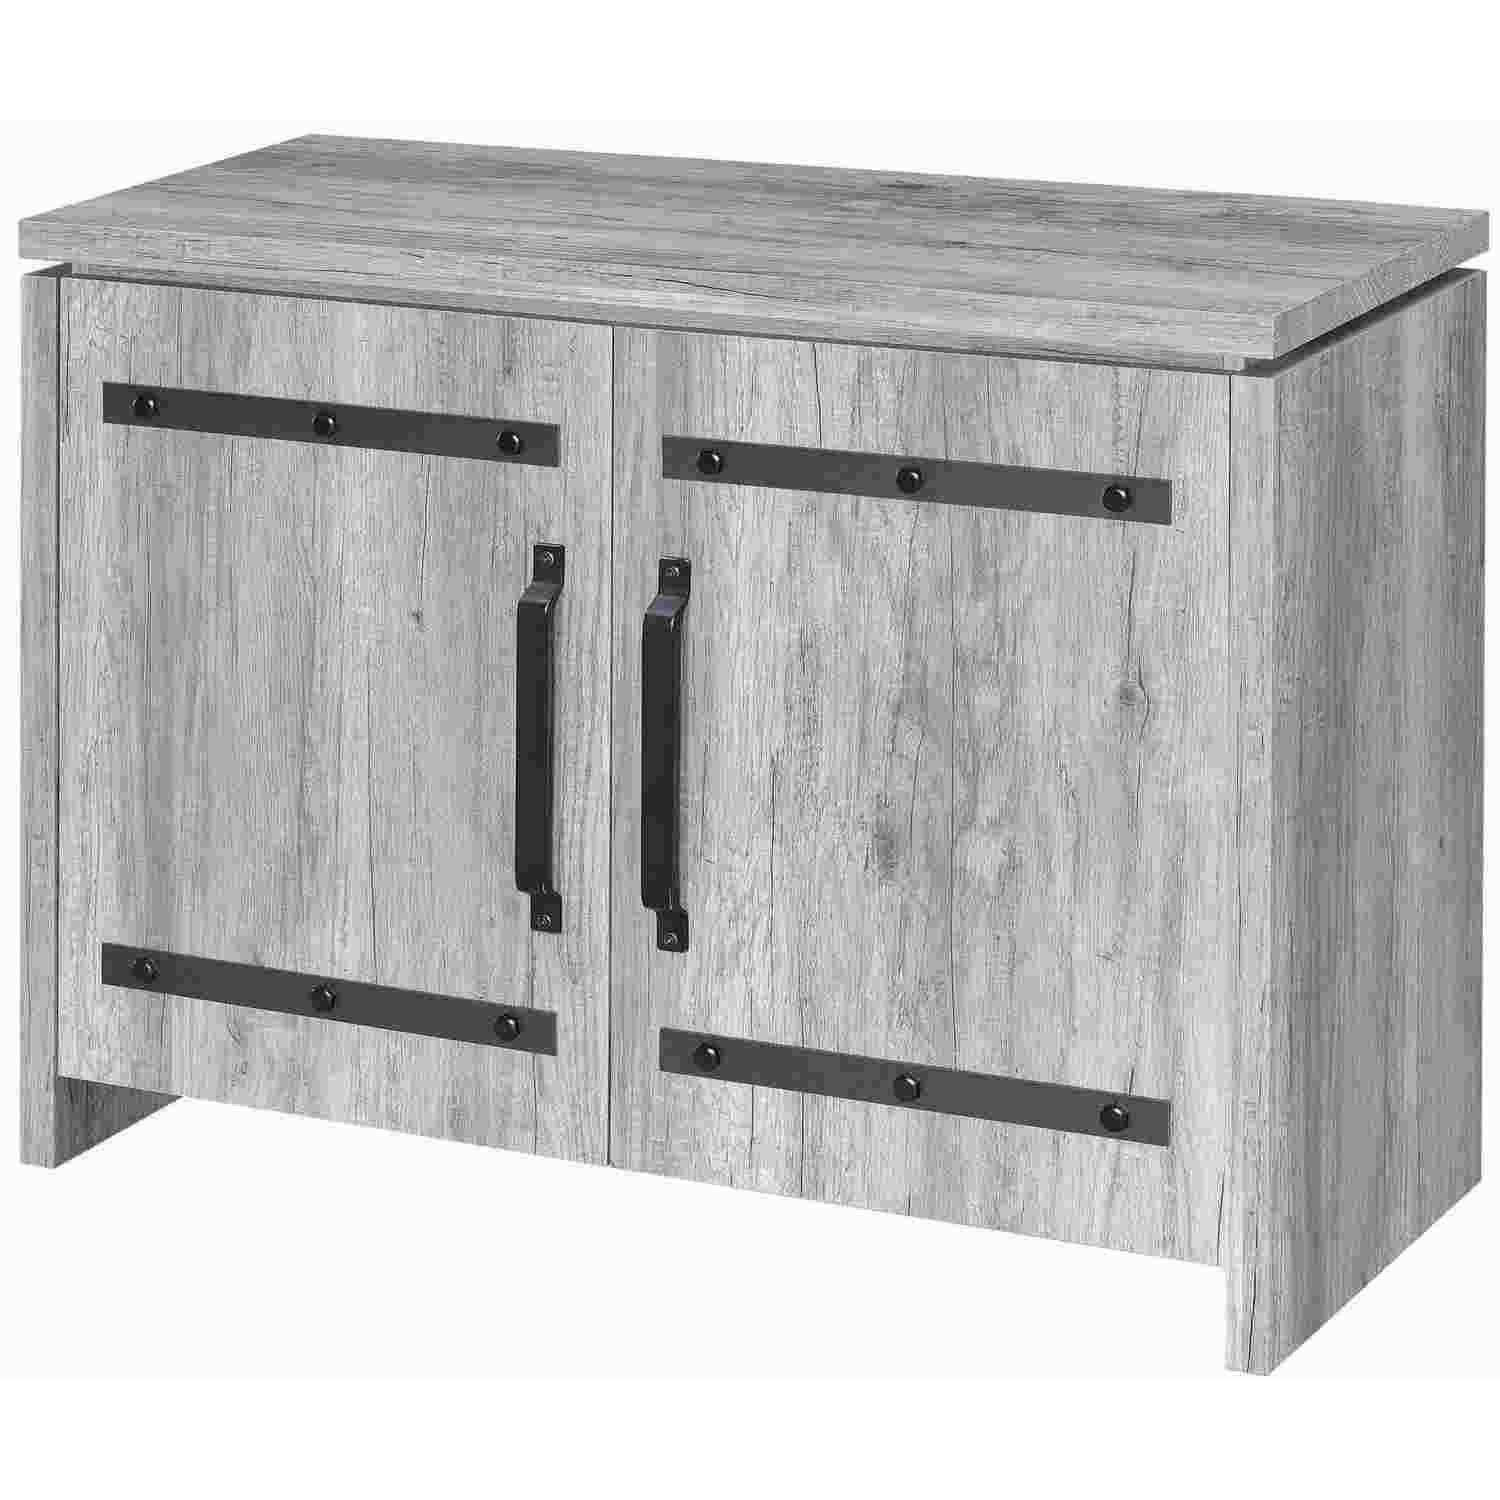 Storage Cabinet w/ Black Metal Accent - image-0